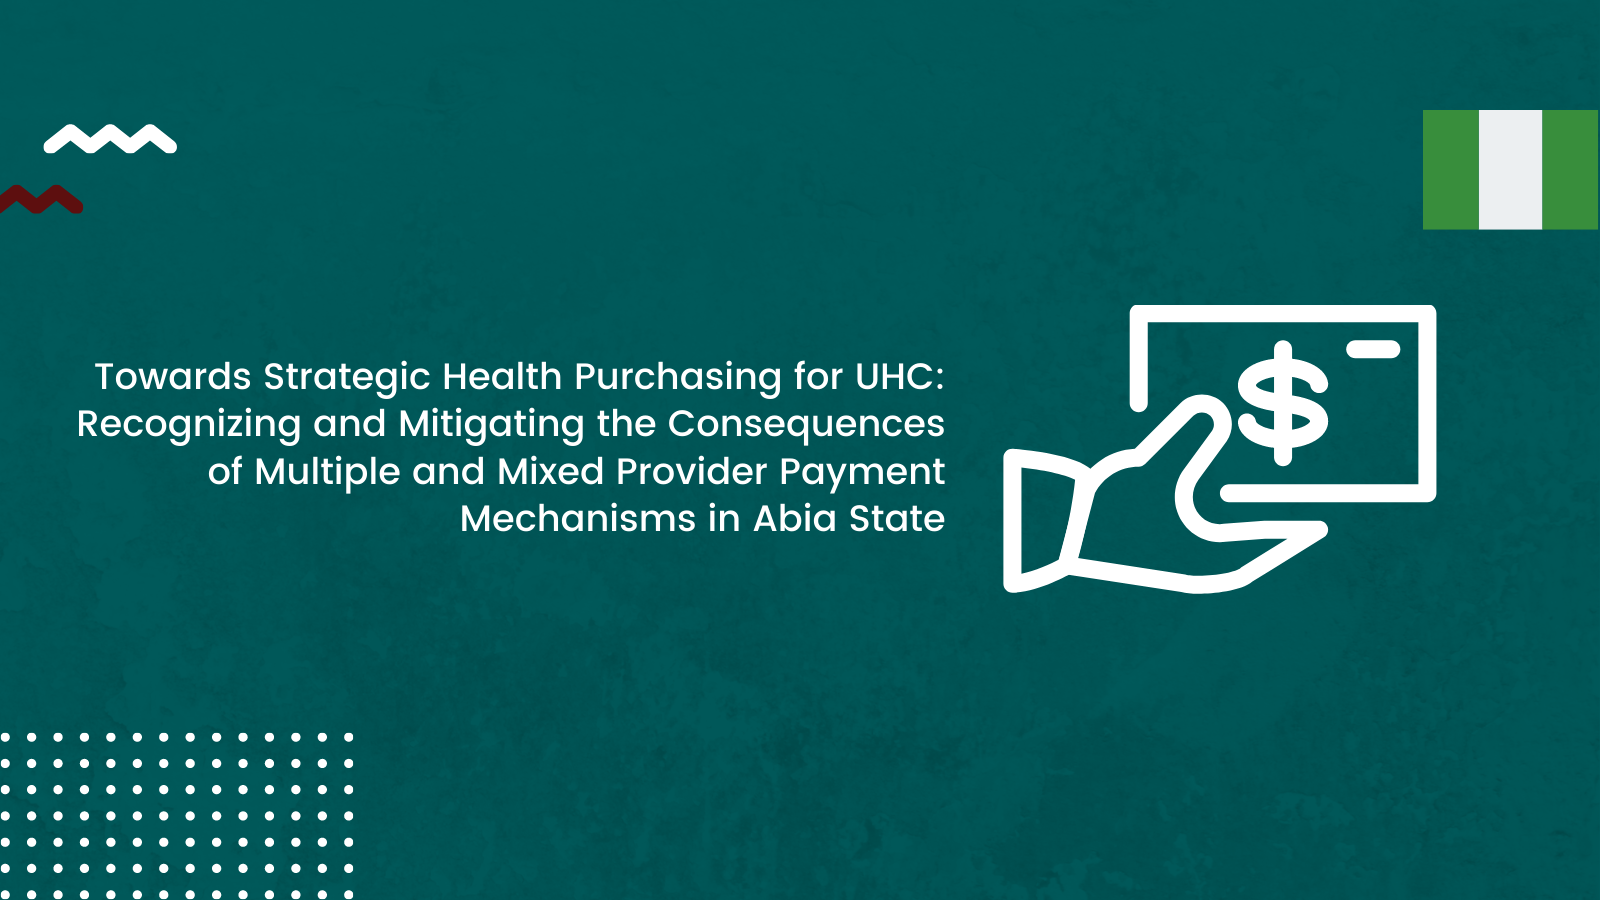 Towards Strategic Health Purchasing for UHC: Recognizing and Mitigating the Consequences of Multiple and Mixed Provider Payment Mechanisms in Abia State